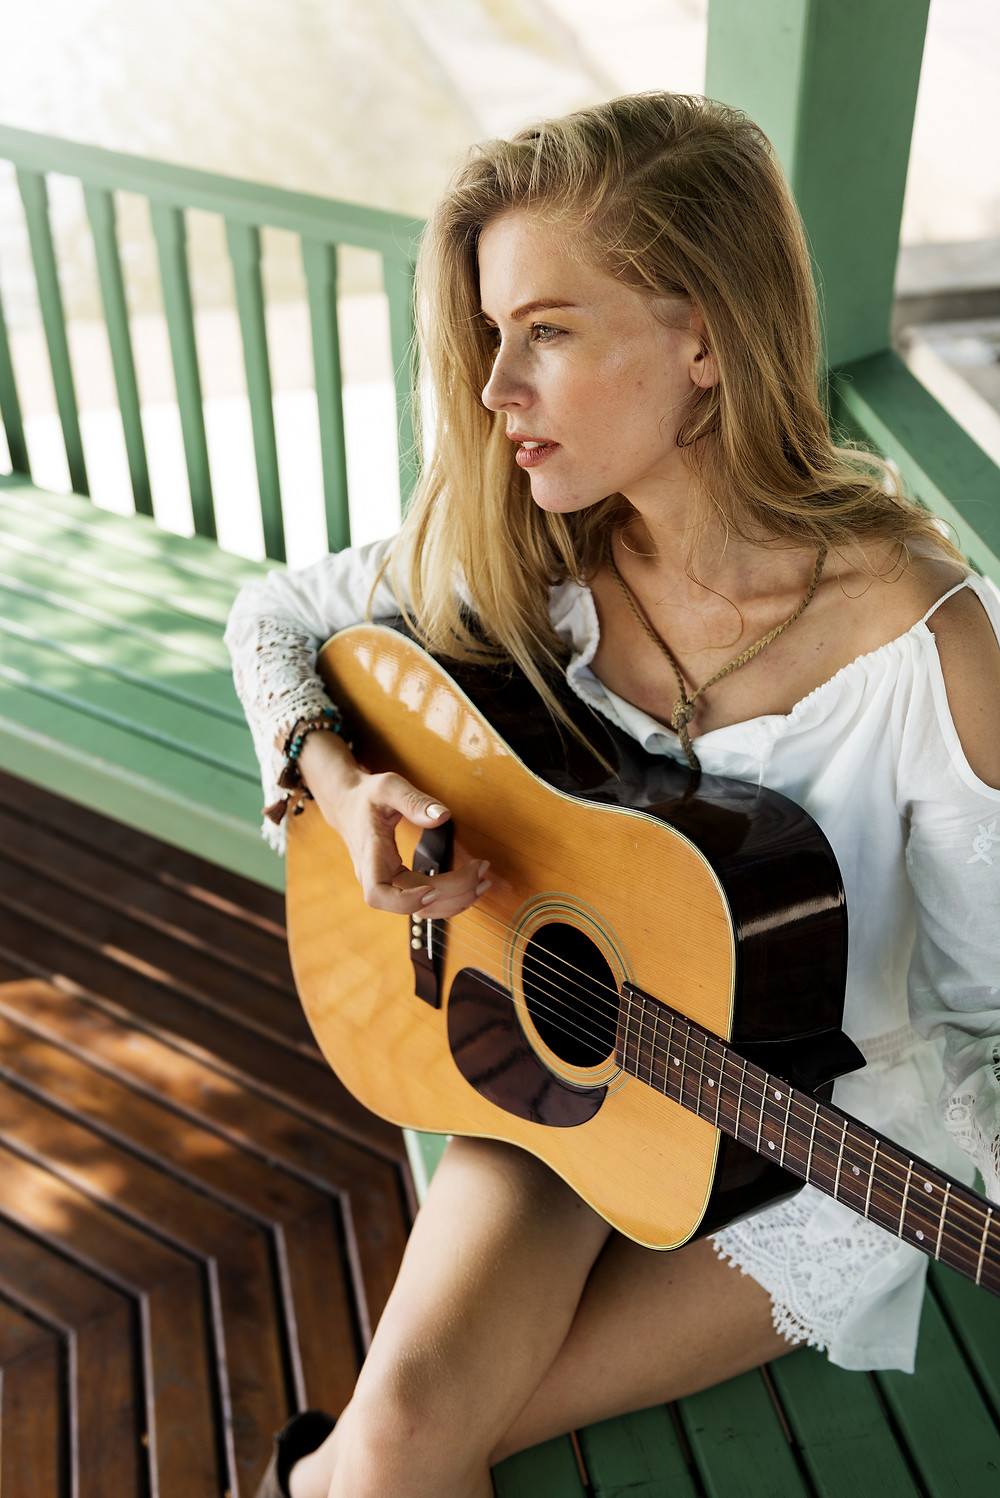 Girl practicing on her guitar